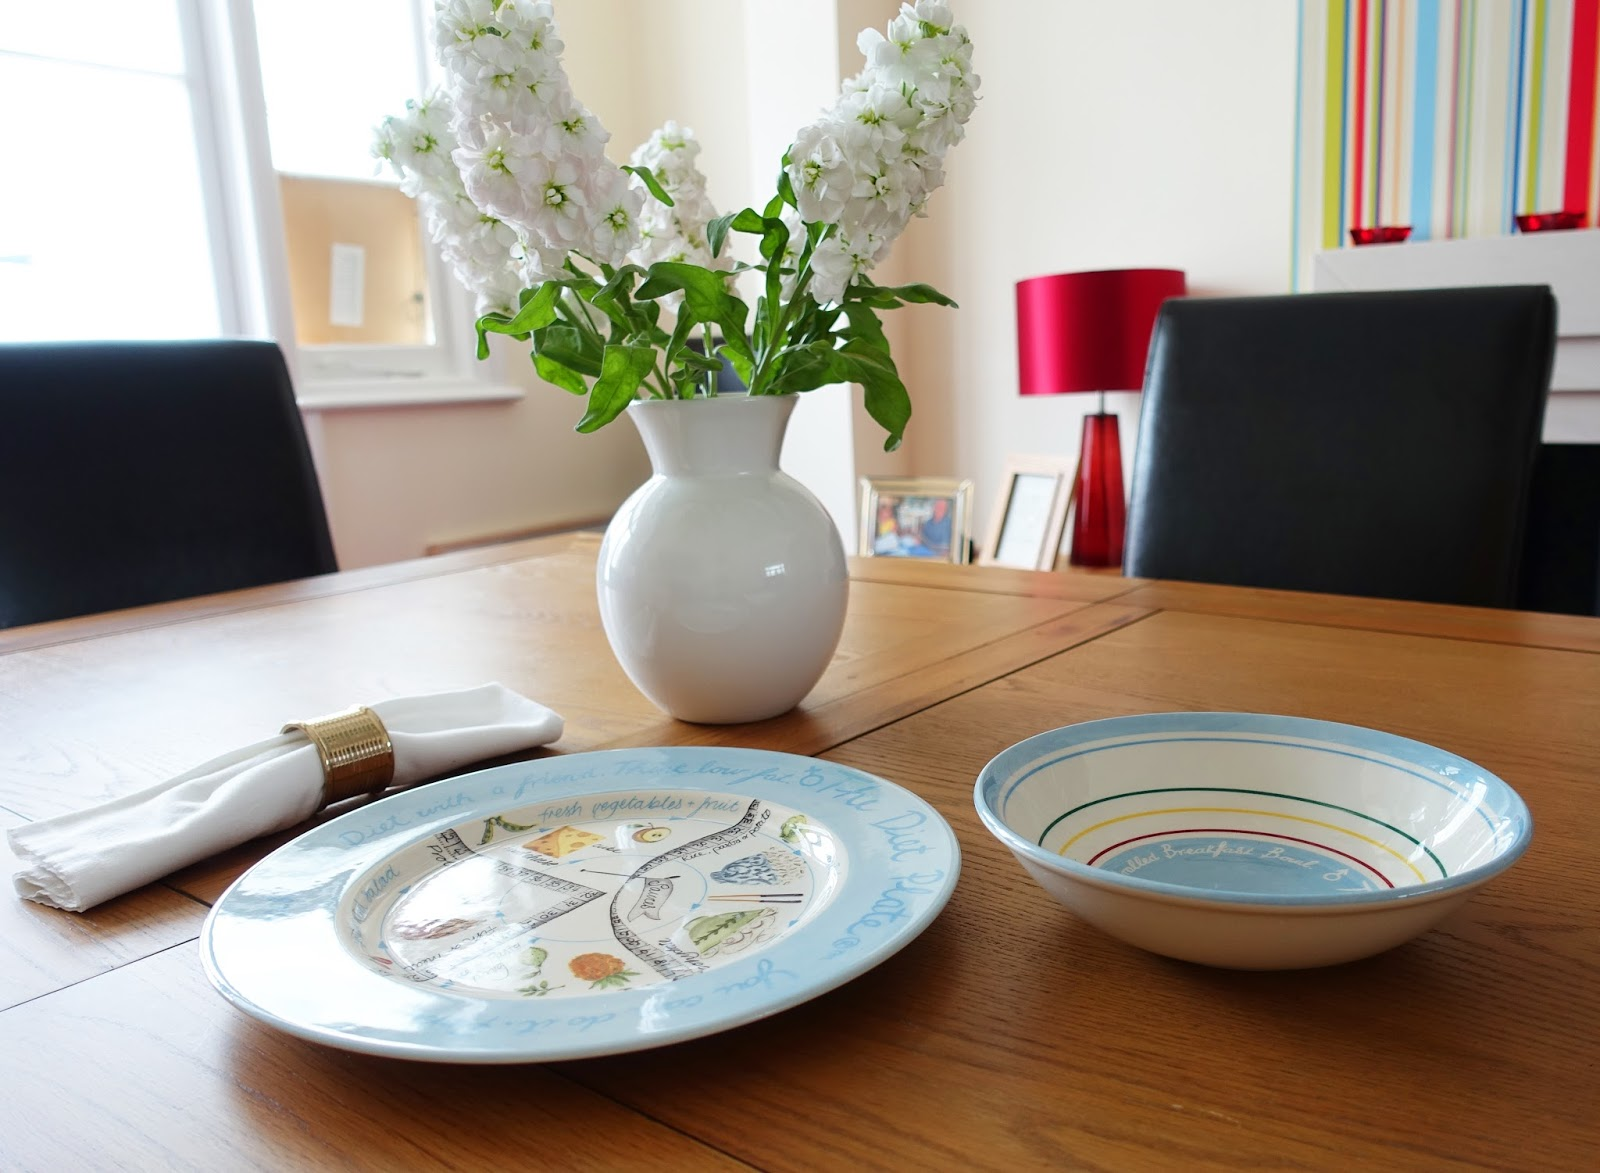 The Diet Plate and cereal bowl shown on a dining room table. Copyright: Gail Hanlon